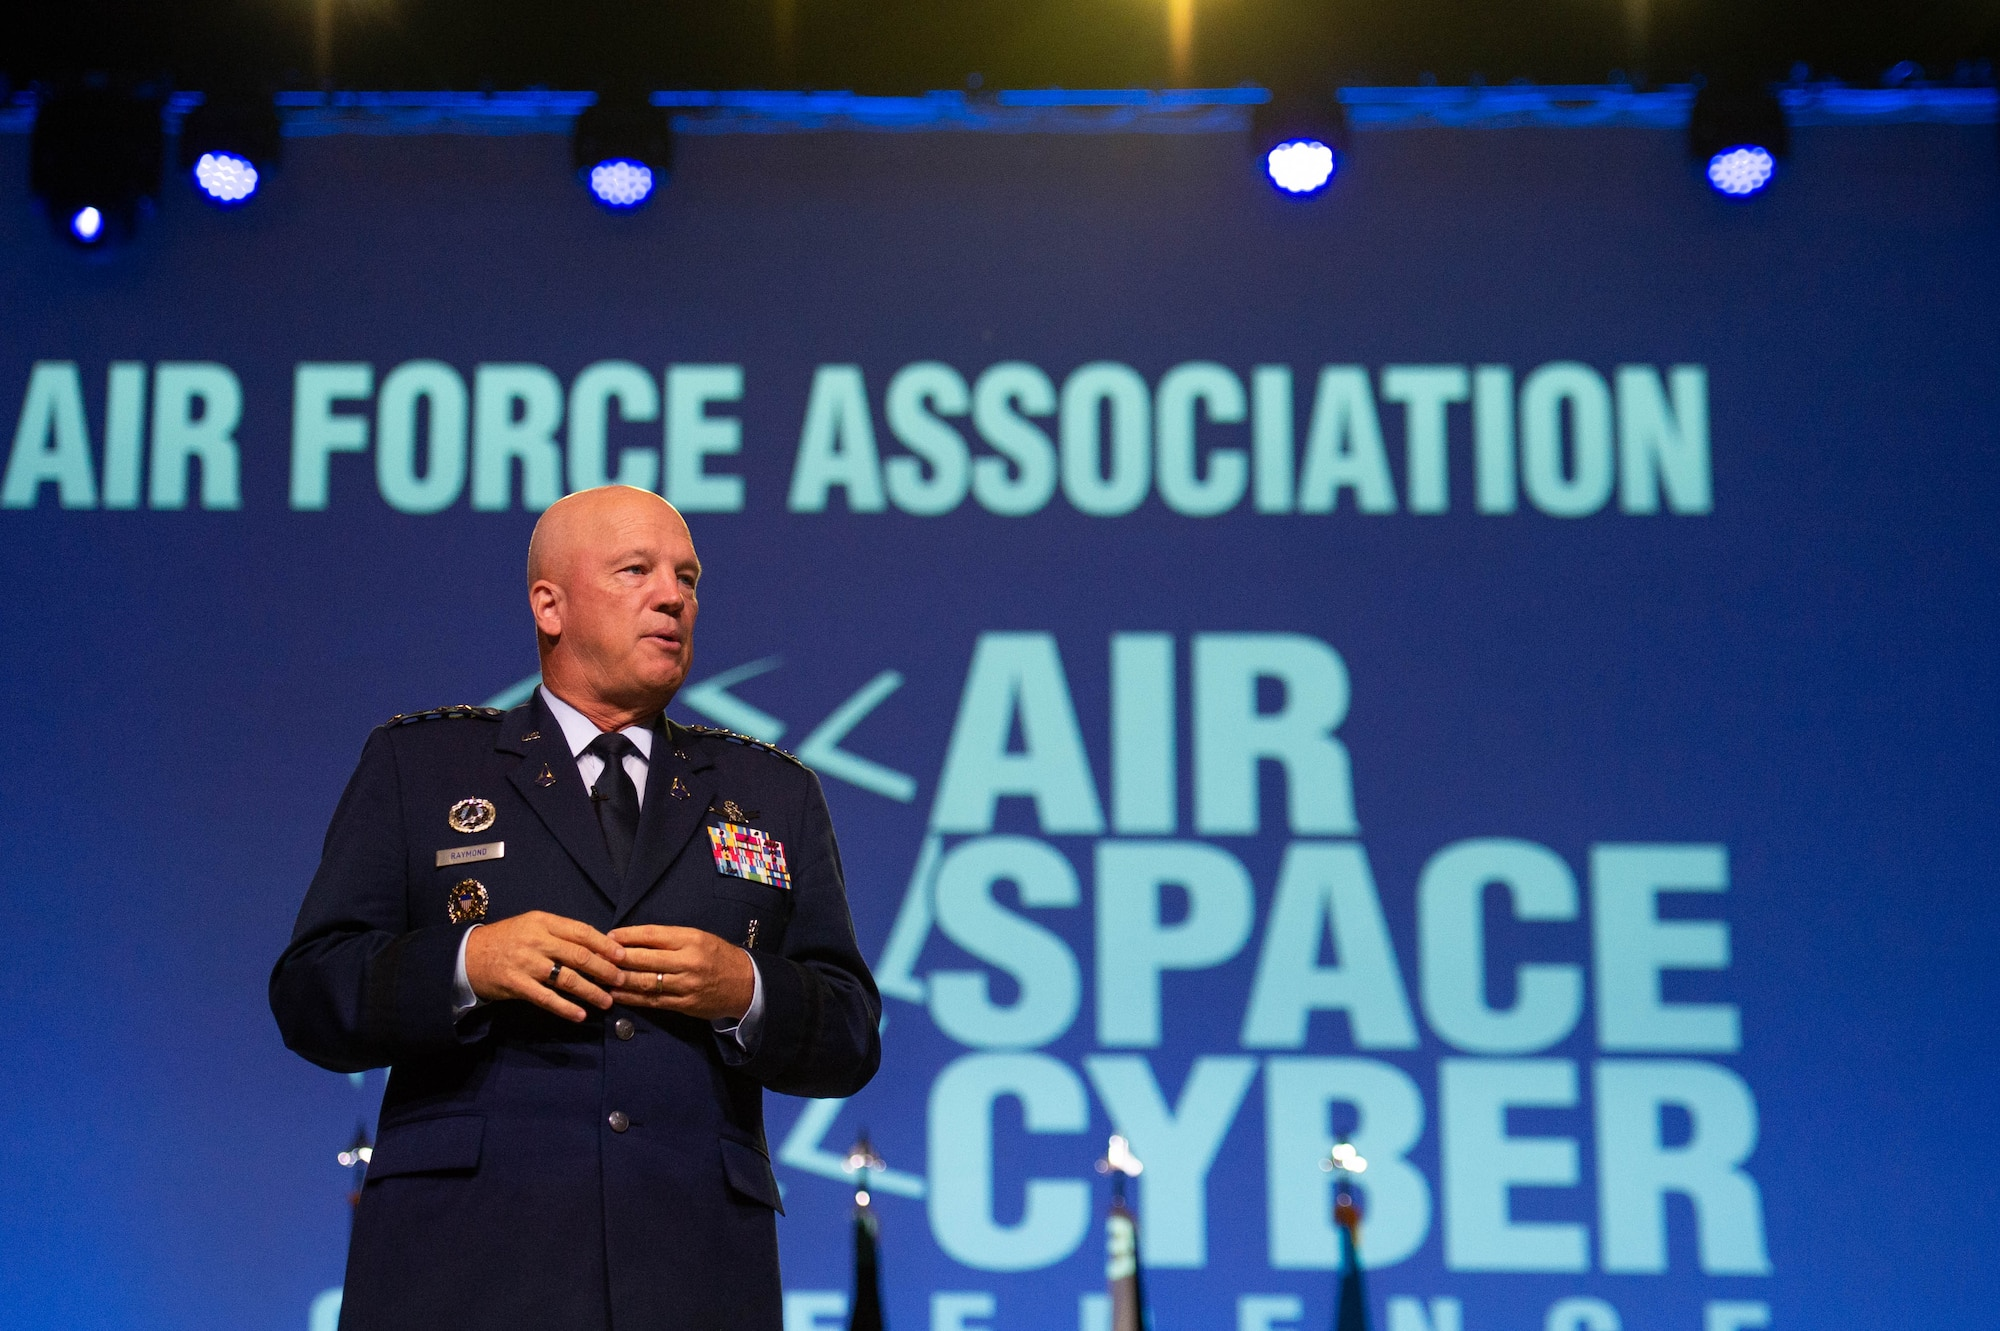 """Chief of Space Operations Gen. John W. """"Jay"""" Raymond gives an update on the U.S. Space Force during the Air Force Association Air, Space and Cyber Conference at National Harbor, Md., Sept. 21, 2021. During his presentation, Raymond previewed the Space Force's Service Dress Prototype and gave insight to the """"Guardian Ideals,"""" which identifies the Space Force's vision for its culture to ensure mission success. (U.S. Air Force photo by Tech. Sgt. Areca T. Wilson)"""